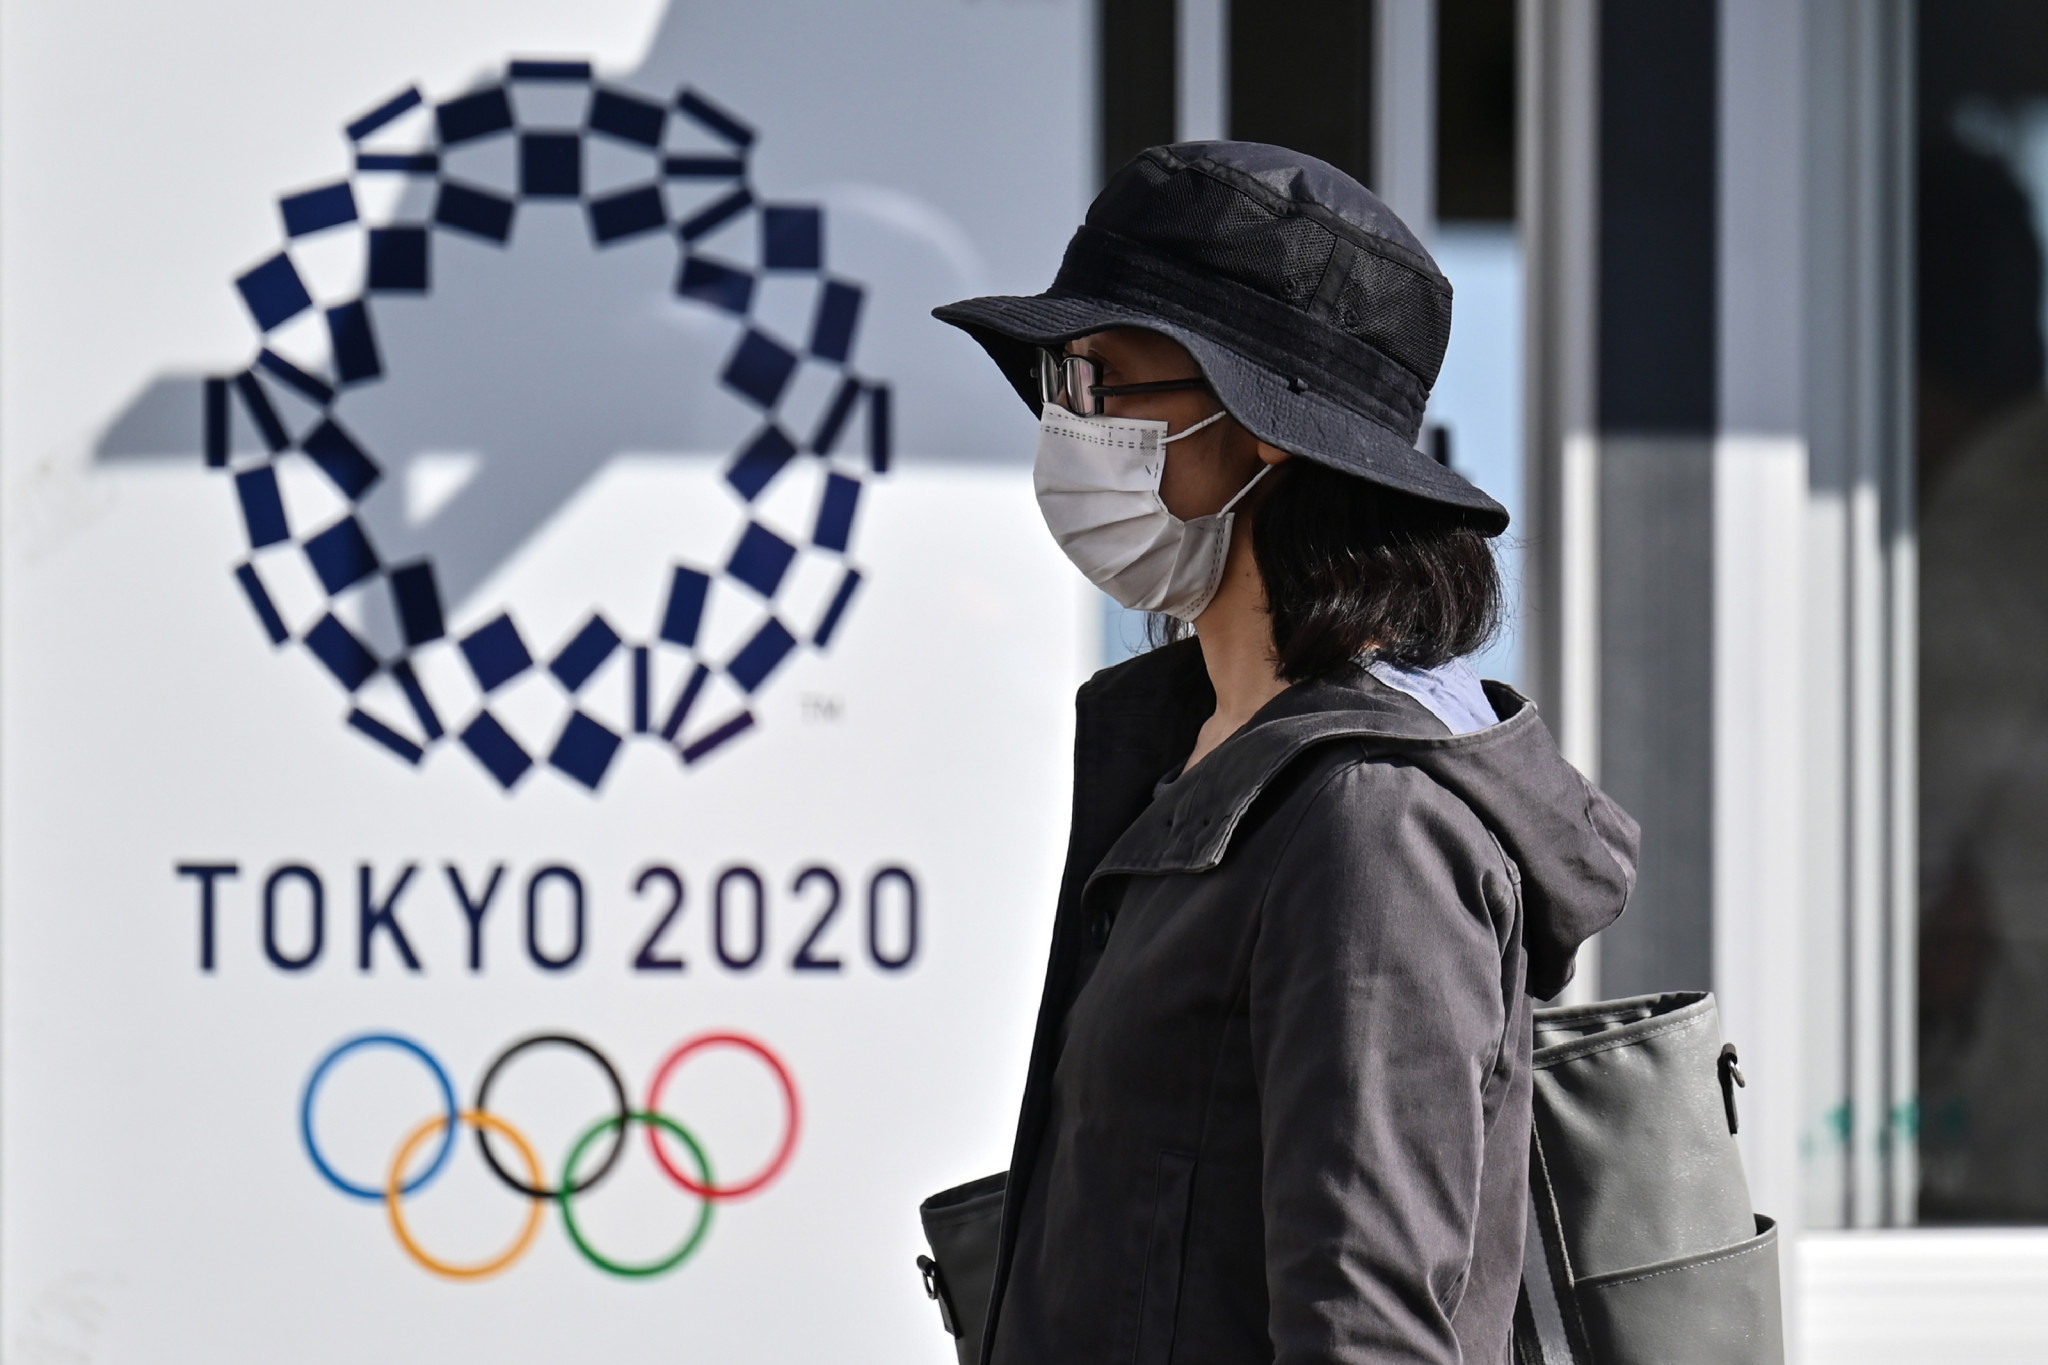 Tokyo 2020 organisers issue advice to spectators after security tests